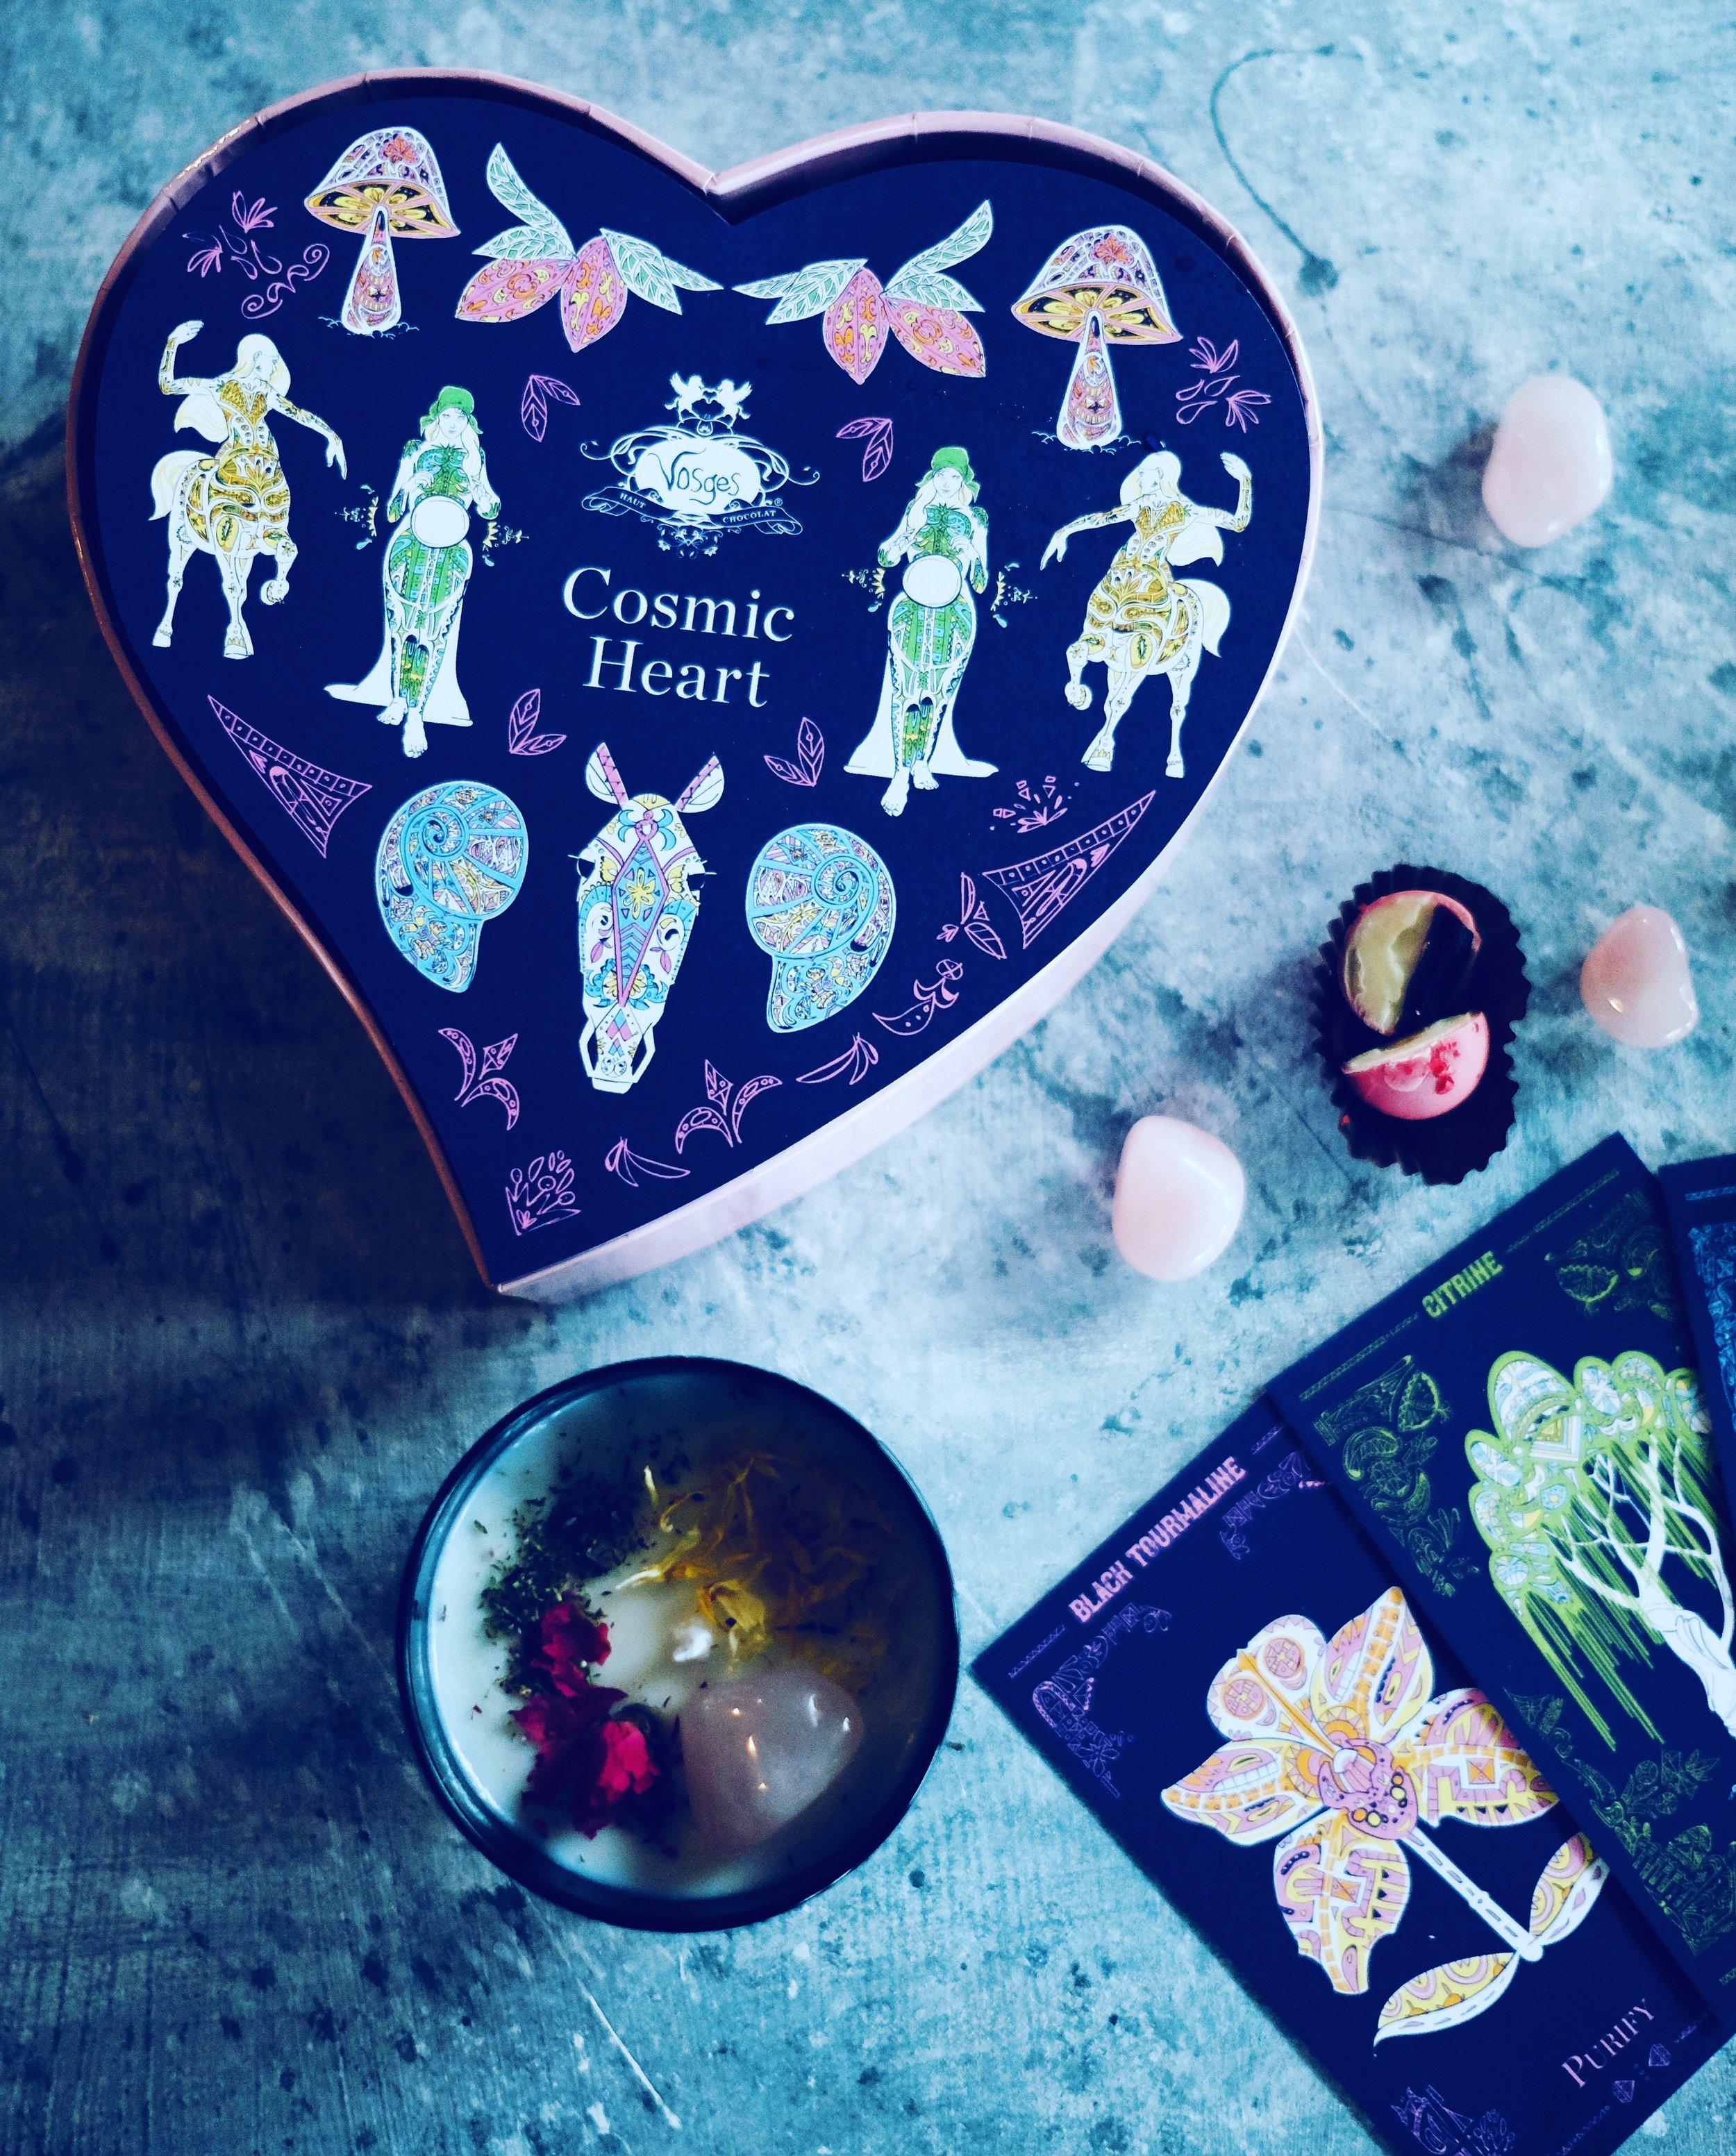 Pictured here Vosges Cosmic Heart Chocolate collection, Crystal Pairing cards & MARVEL + MOON Tenth Muse candle.